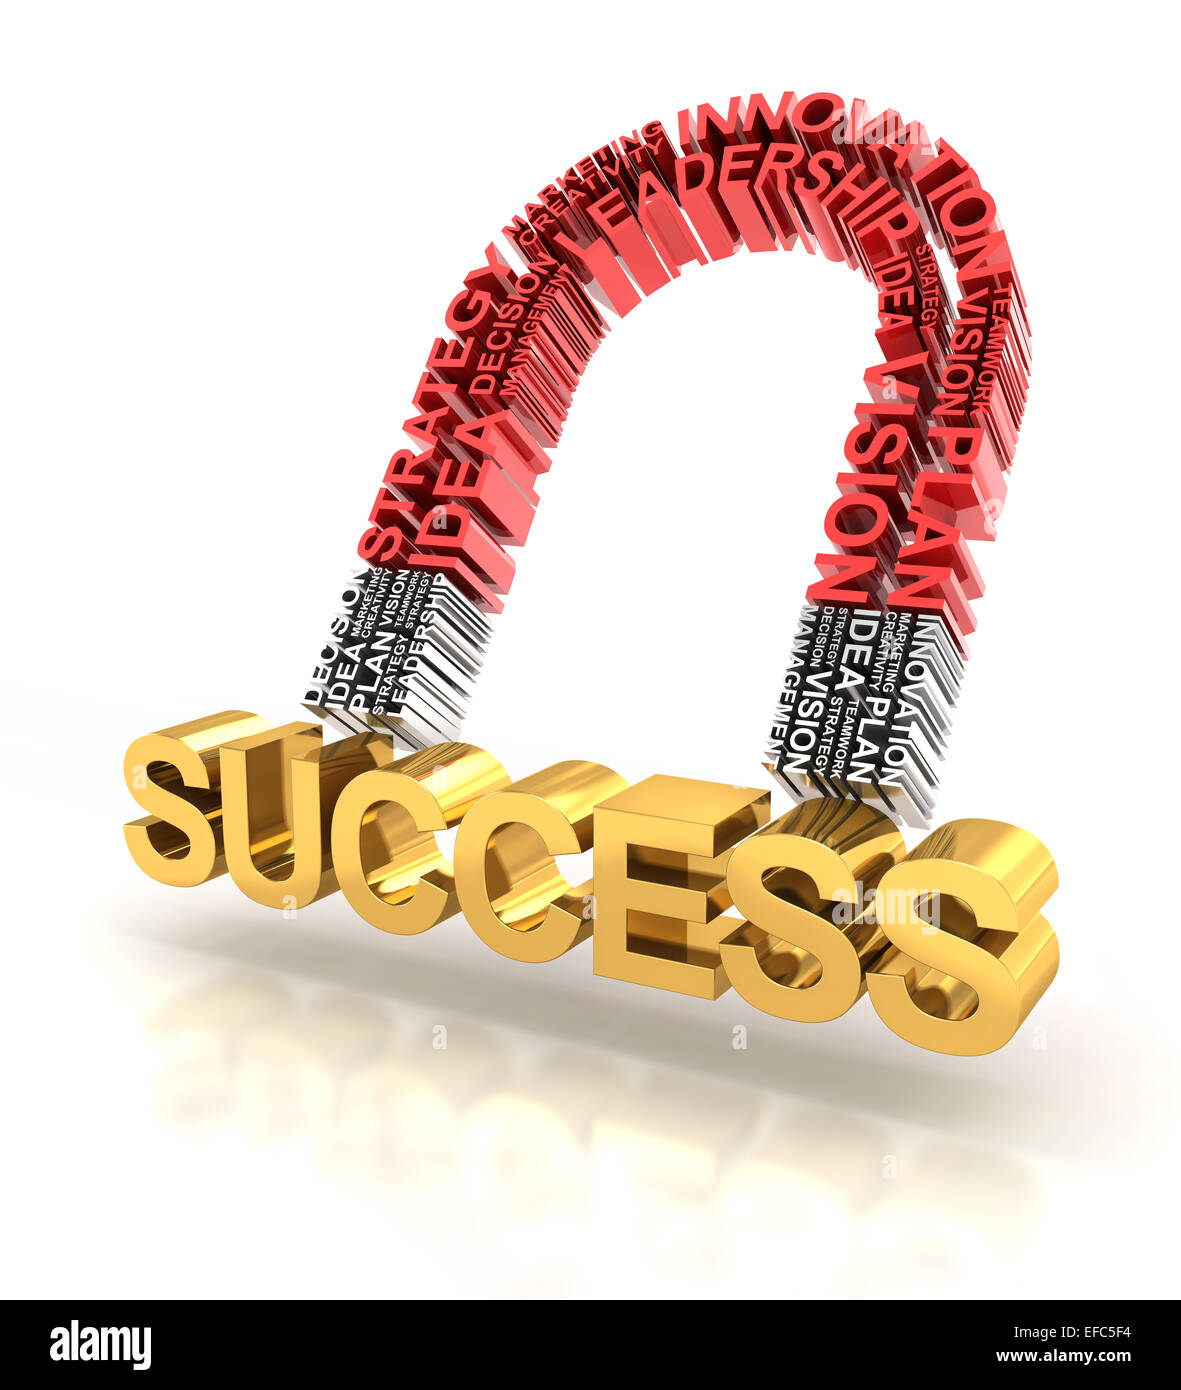 Magnet formed by business words attracting success - Stock Image